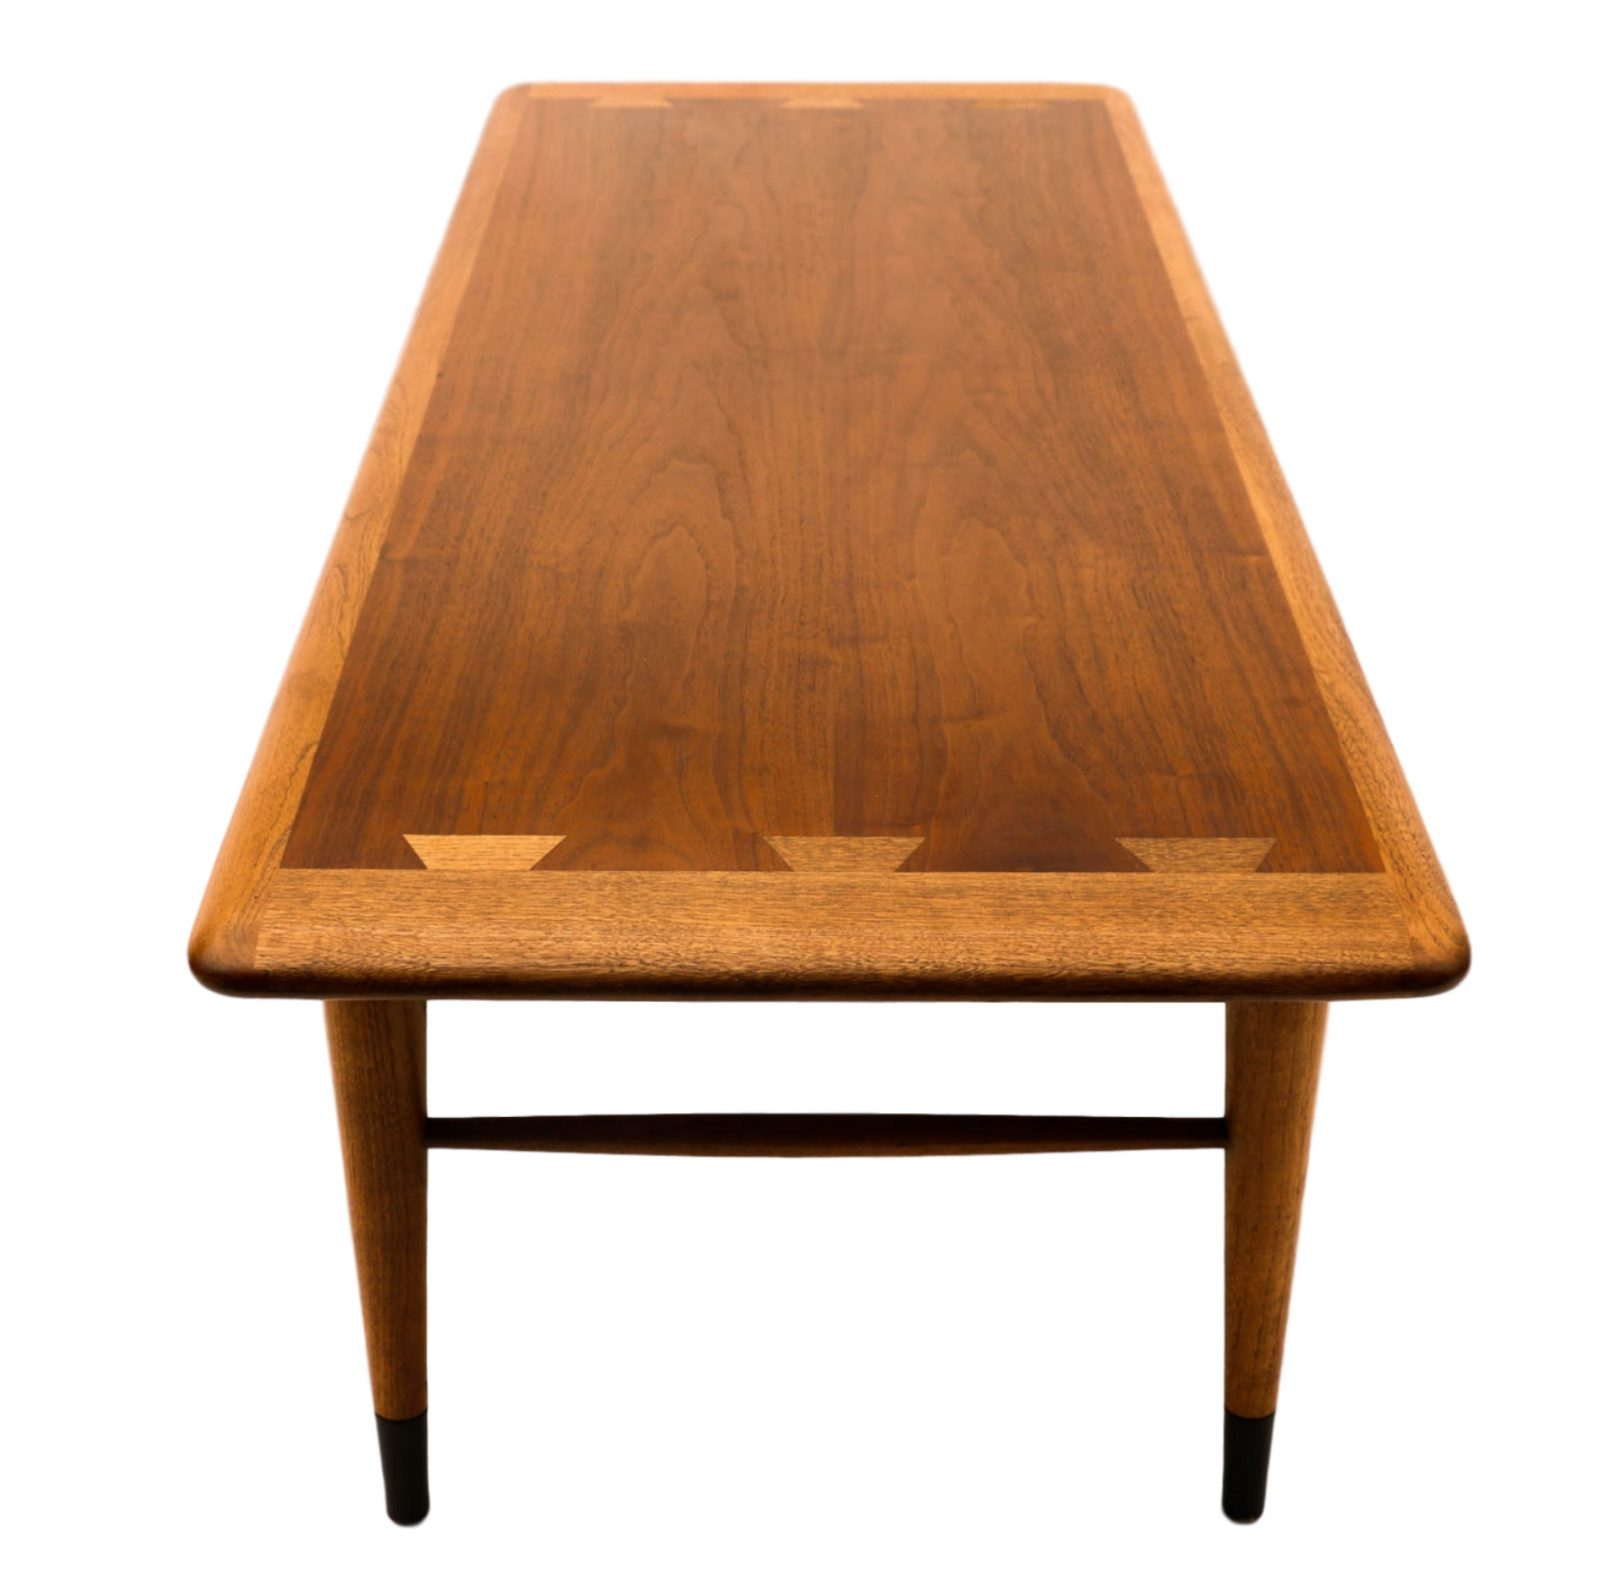 Mid Century Modern Split Level 1956 Edition Better Homes: Mid-Century Modern Furniture LANE Coffee Table Inlaid